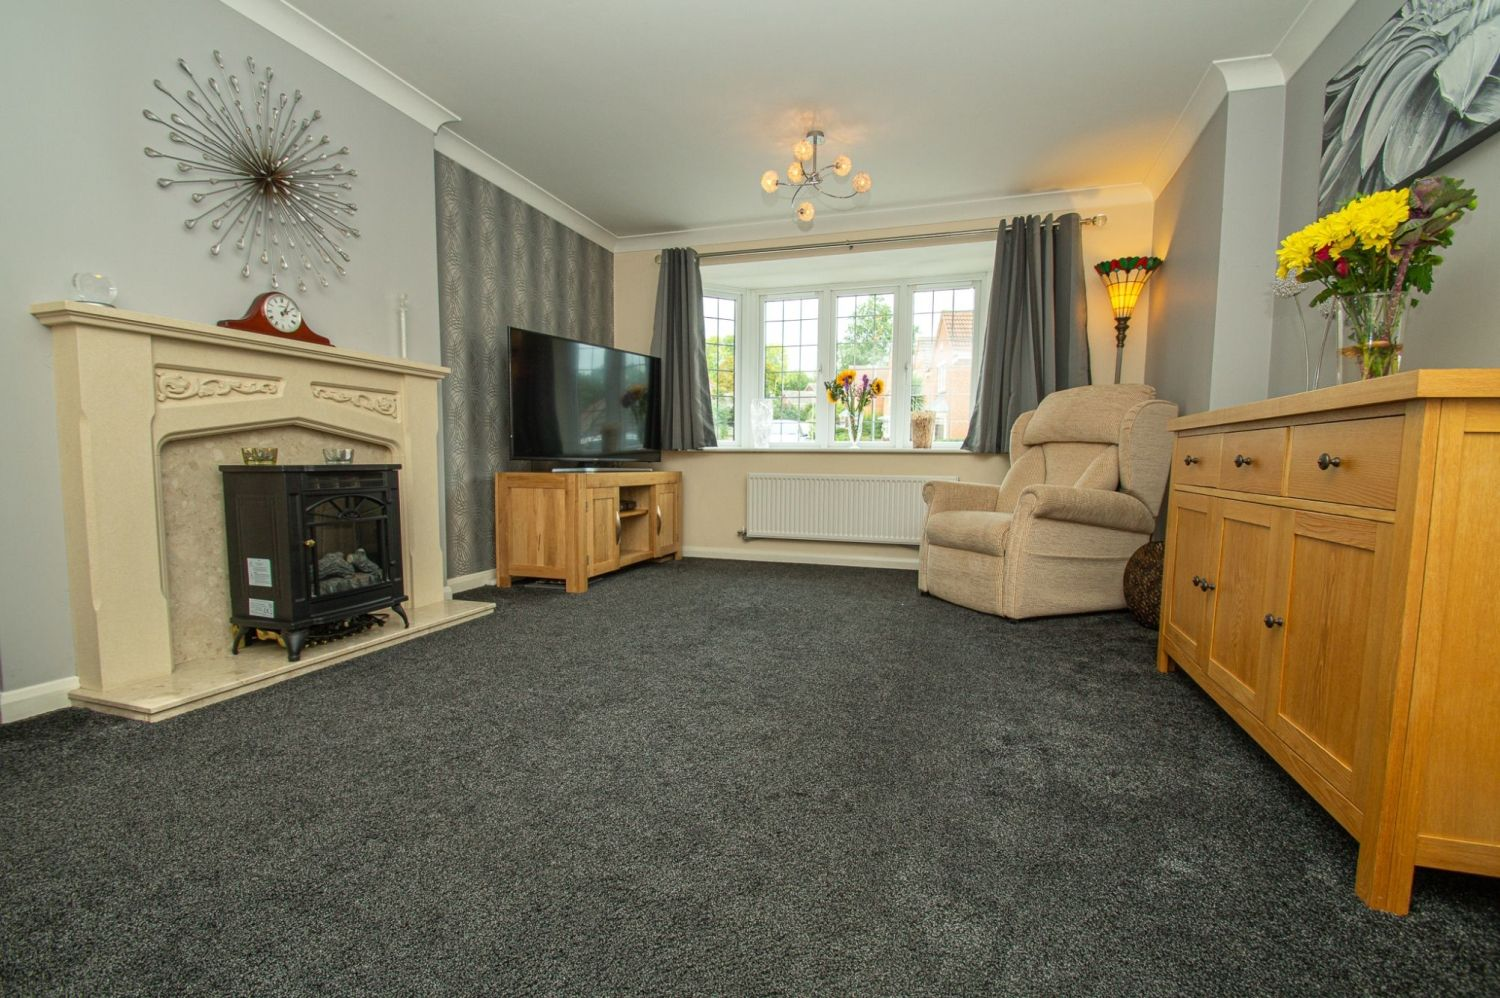 4 bed detached for sale in Harris Close, Greenlands  - Property Image 2